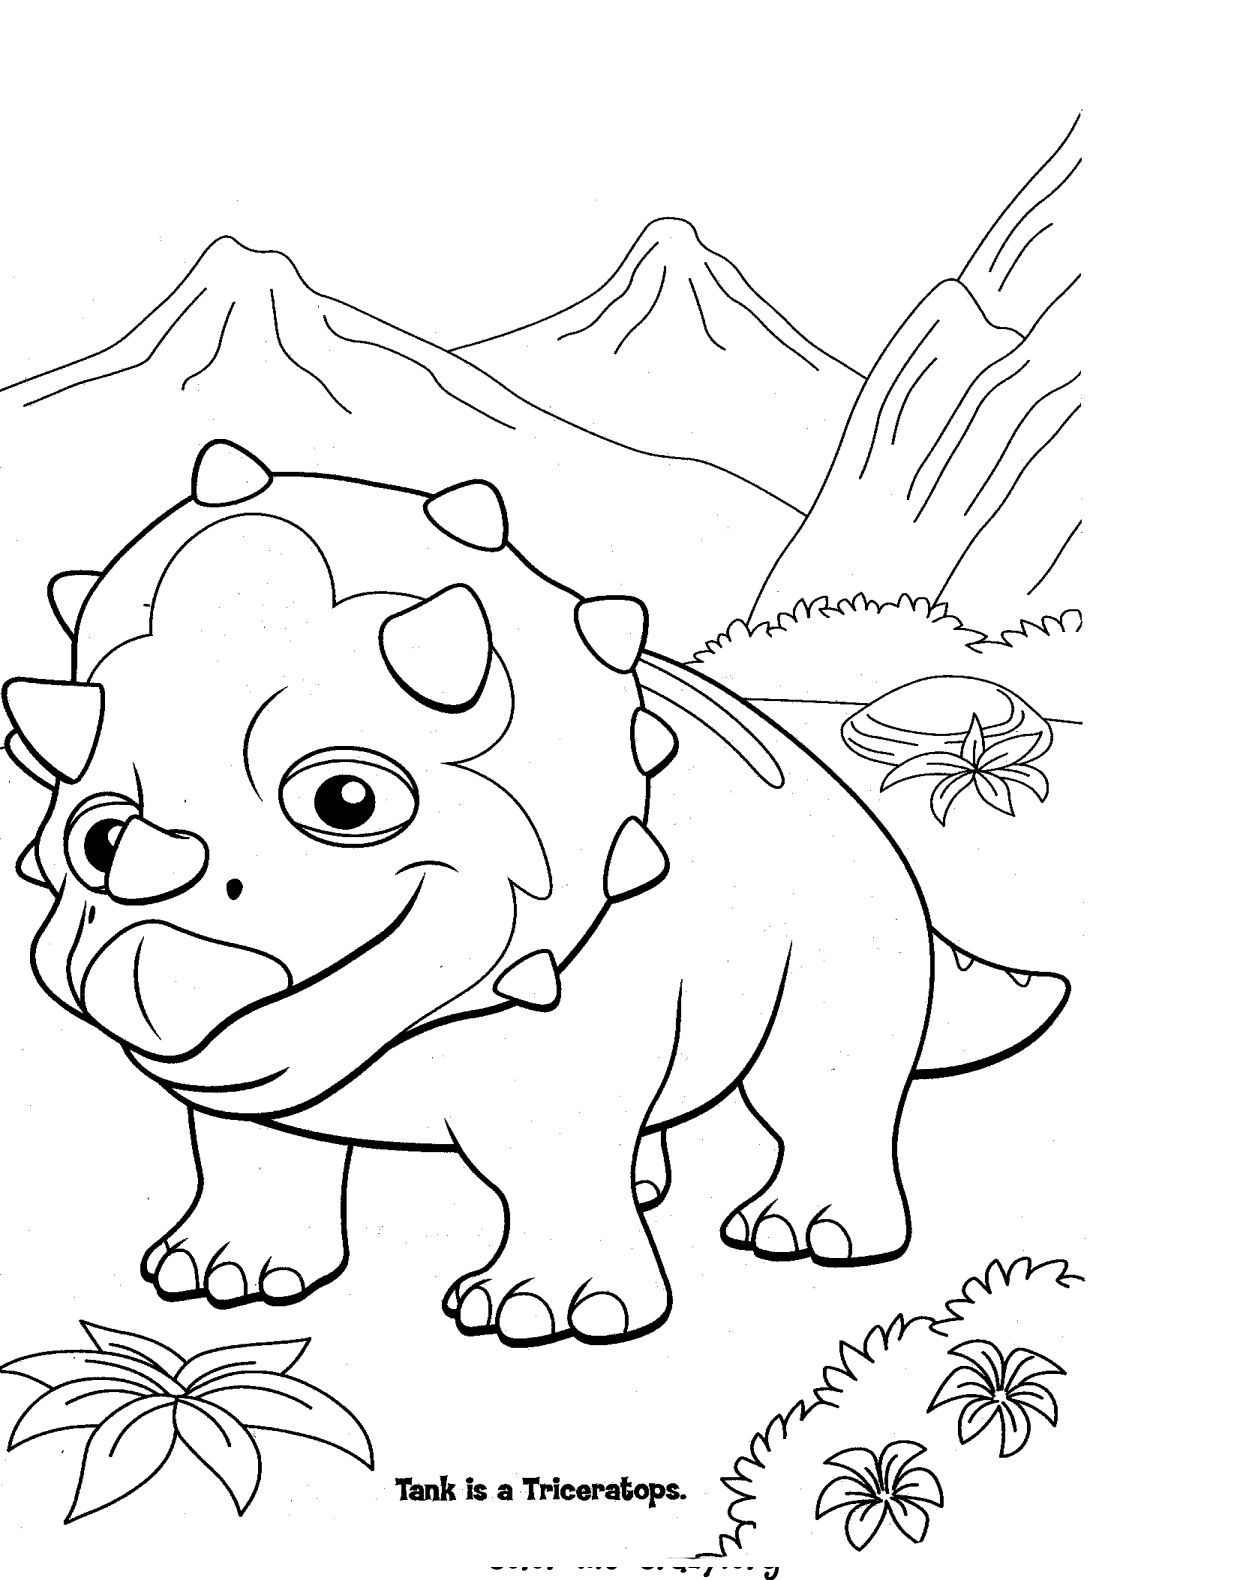 Real looking dinosaur coloring pages - Dinosaur Train Coloring Pages Dinosaur Train Also Gives Out Children All Information About Another Dinosaurs Like Brachiosautus Gigantosaurus